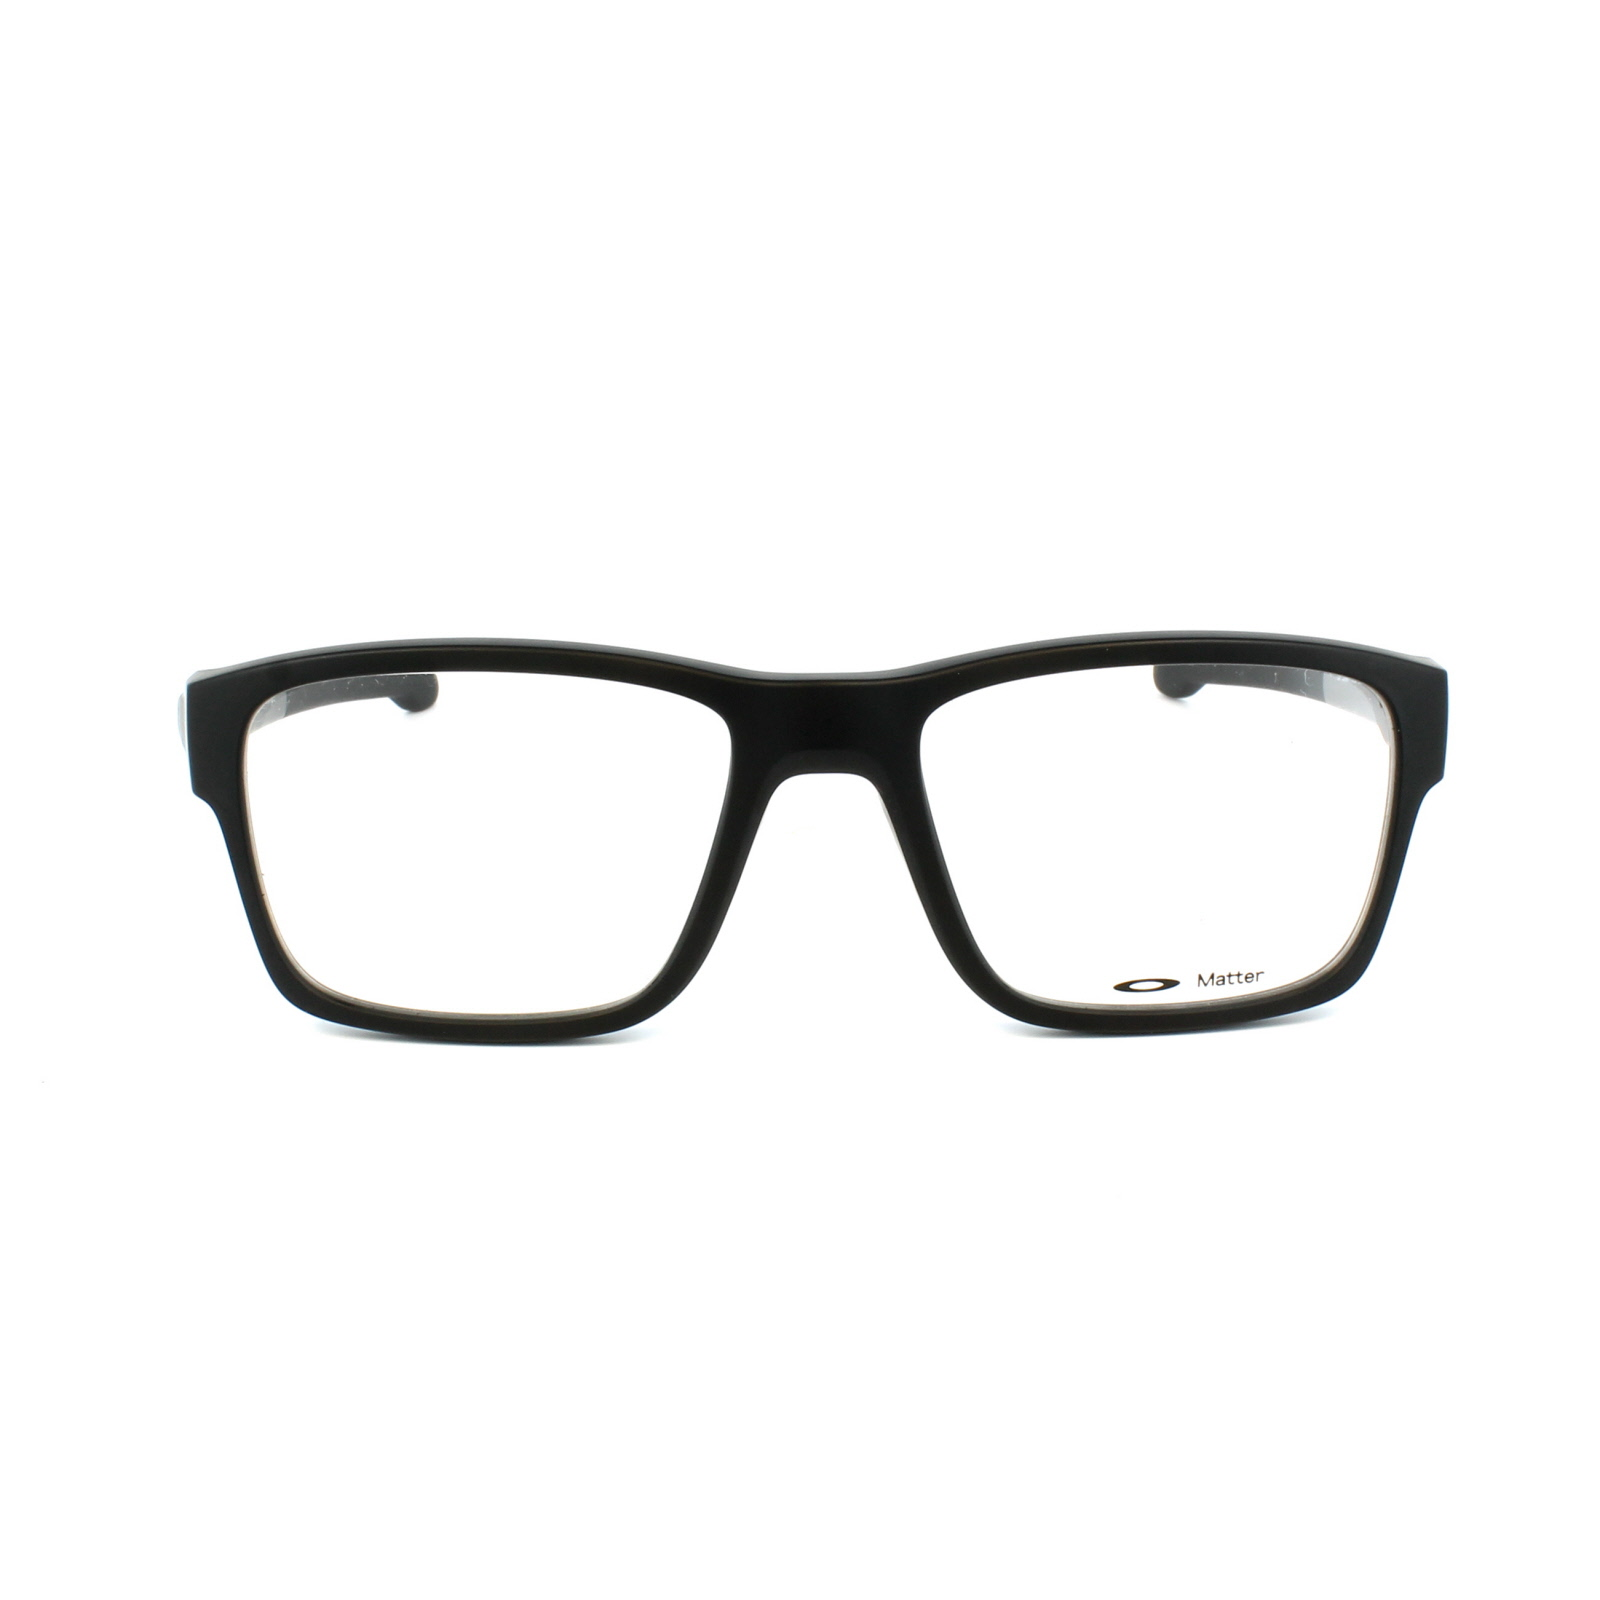 Oakley Glasses Frames Splinter OX8077-01 Satin Black eBay